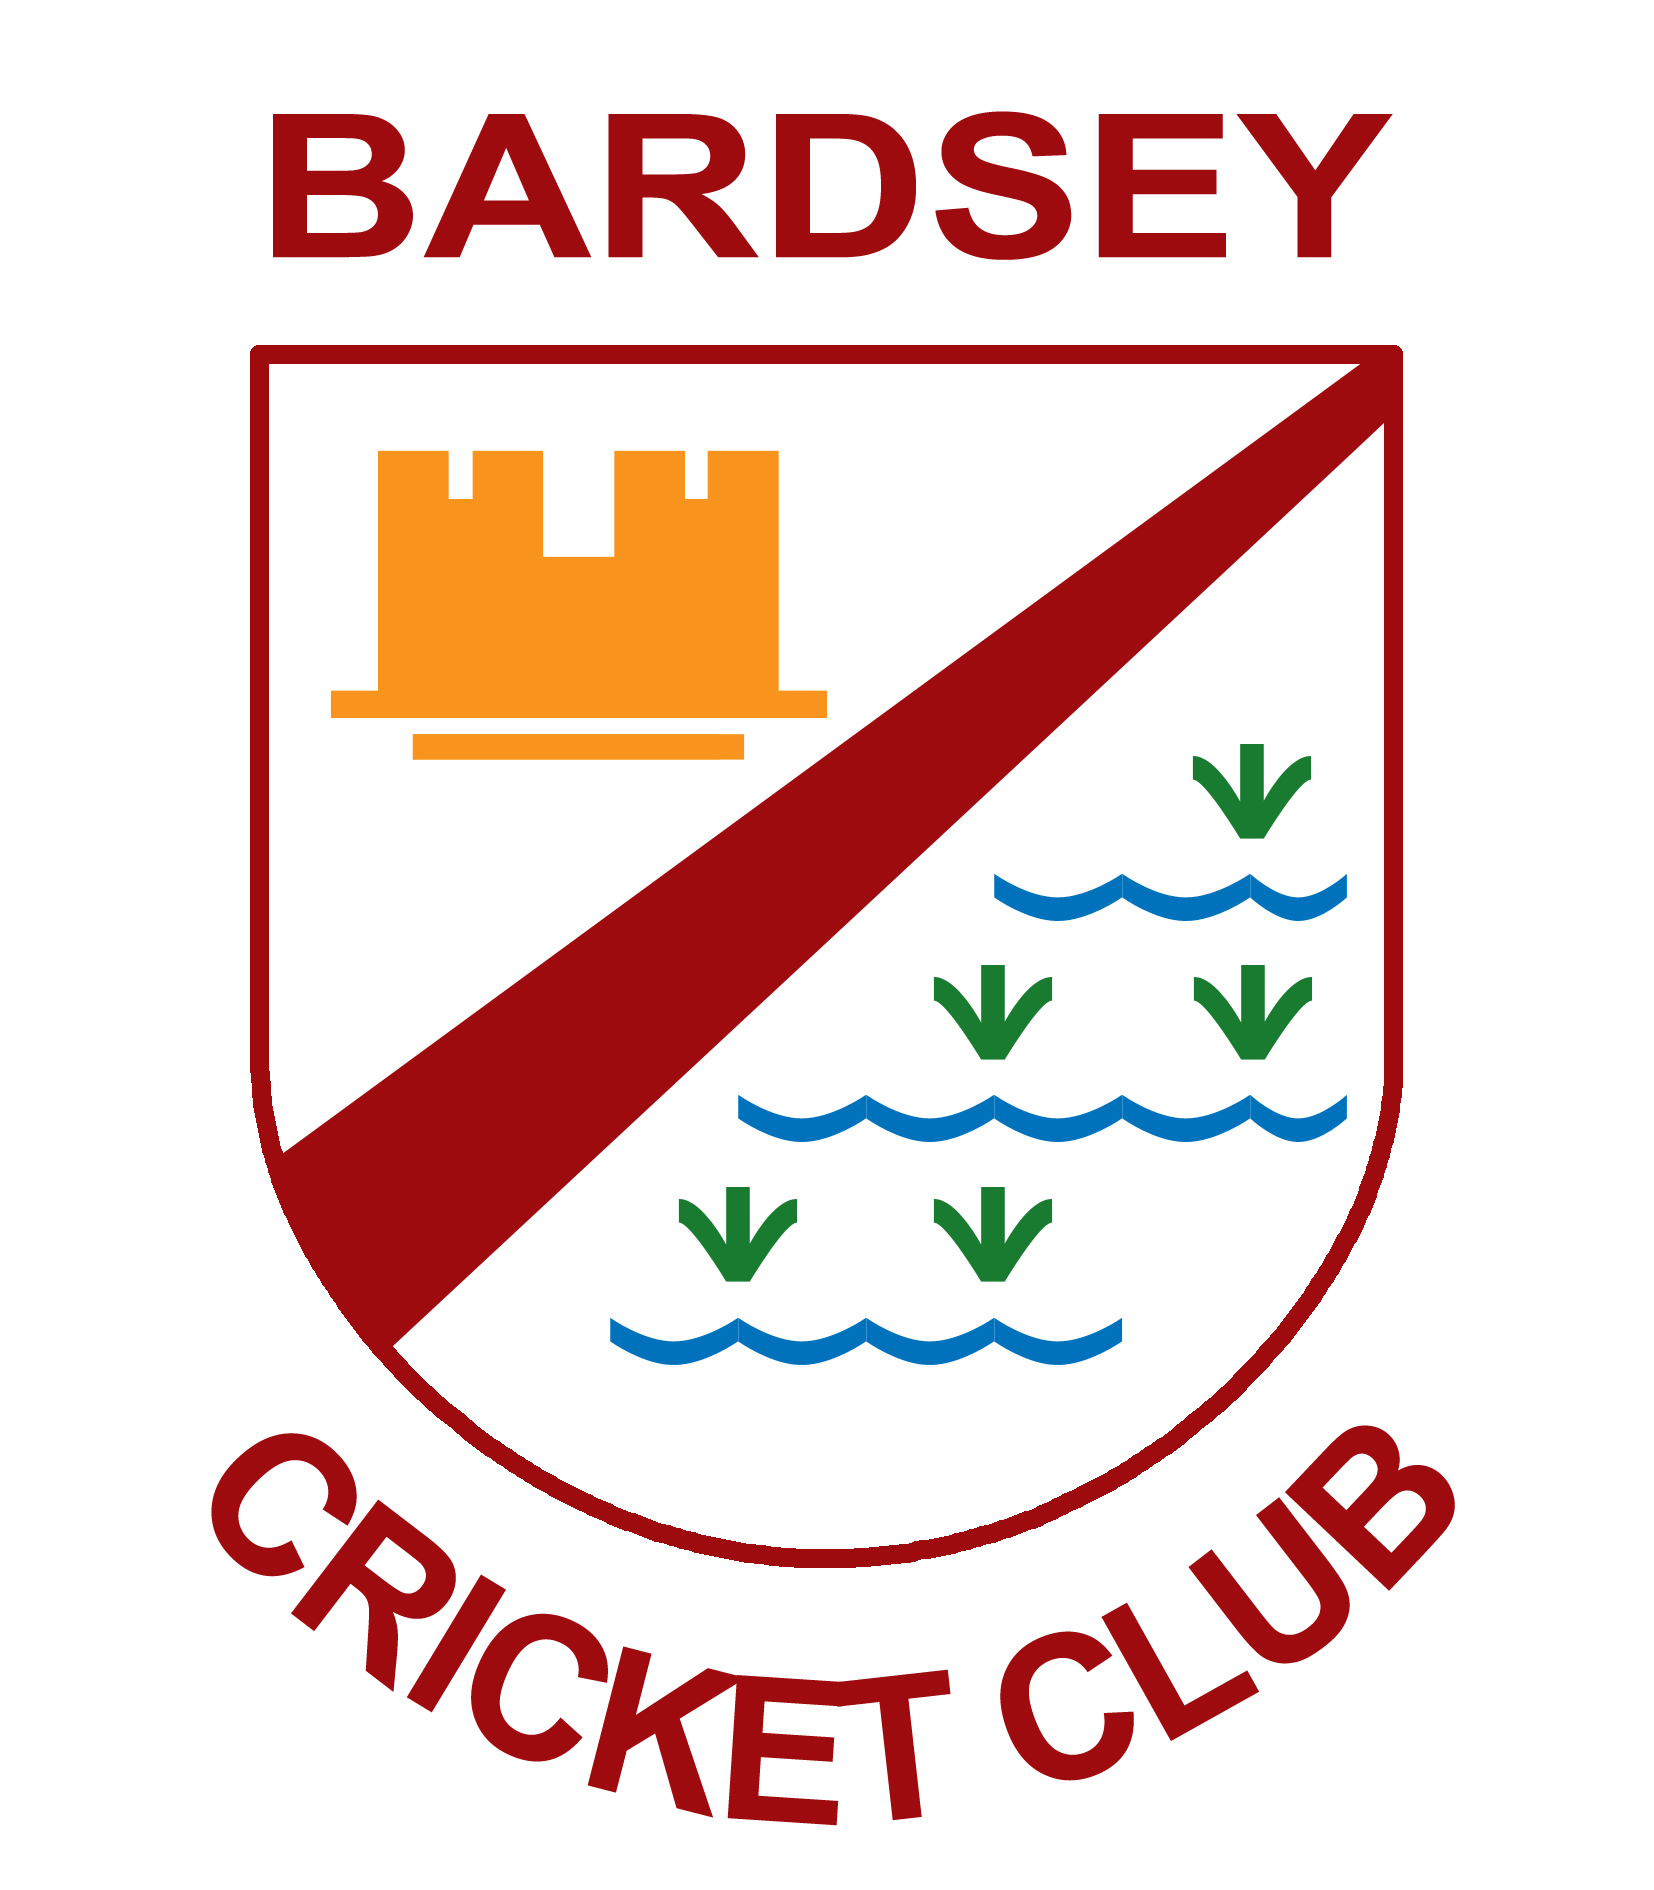 BardseyCC_logo_4_colour